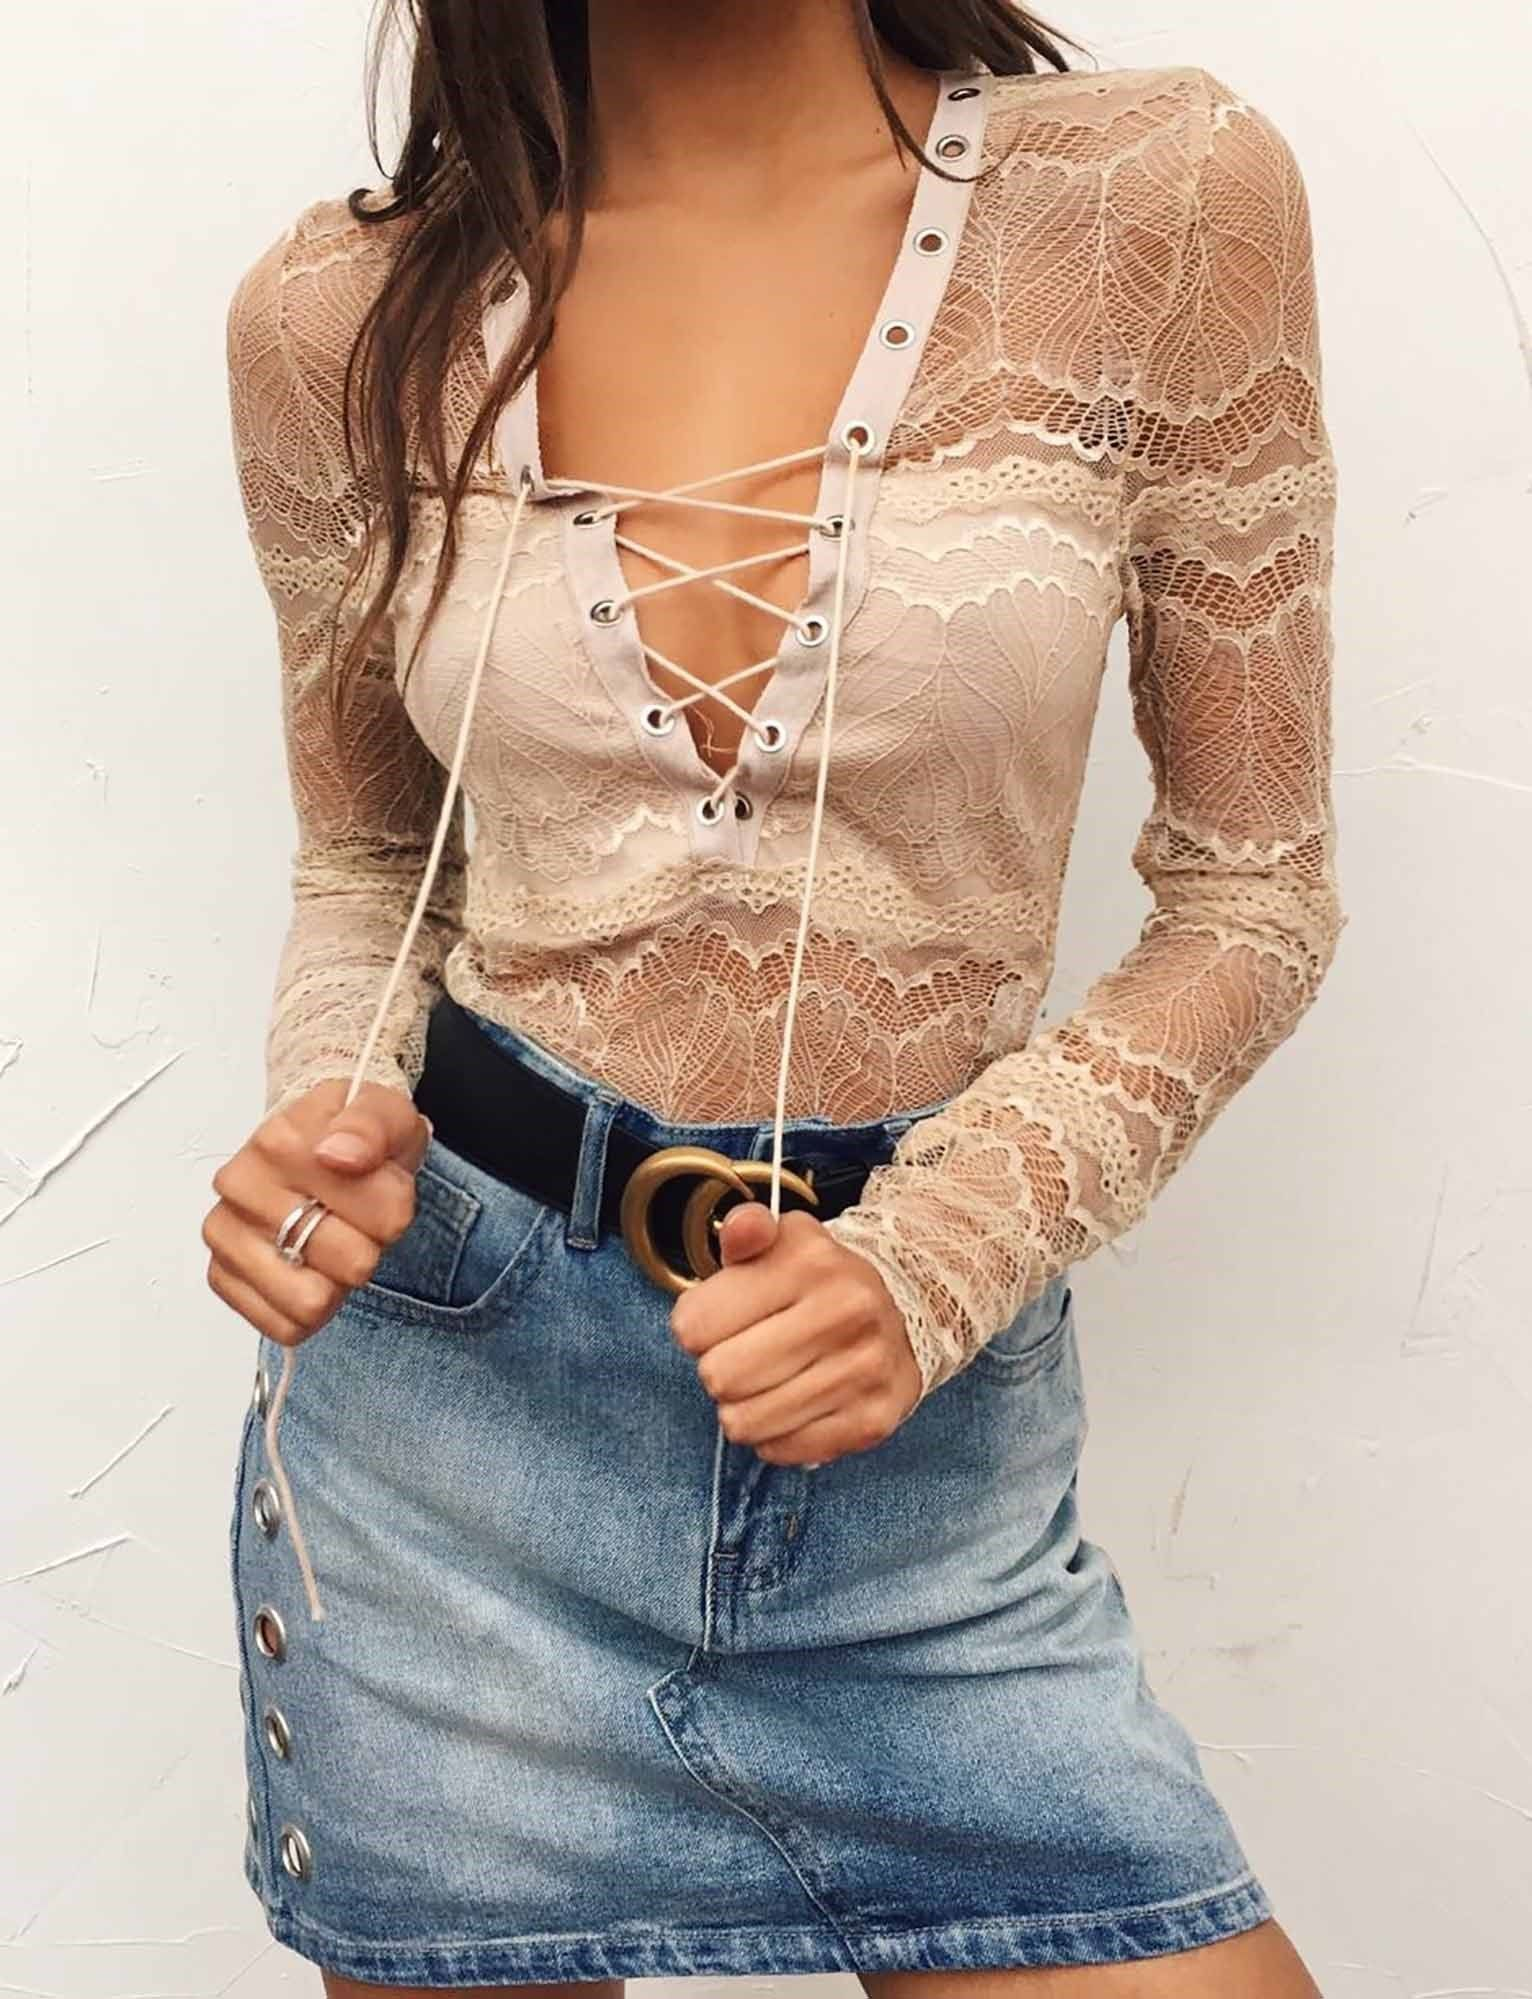 Lace bodysuit with high waisted jeans  Shady Lady Bodysuit  F A S H I O N  C L O T H I N G  Pinterest